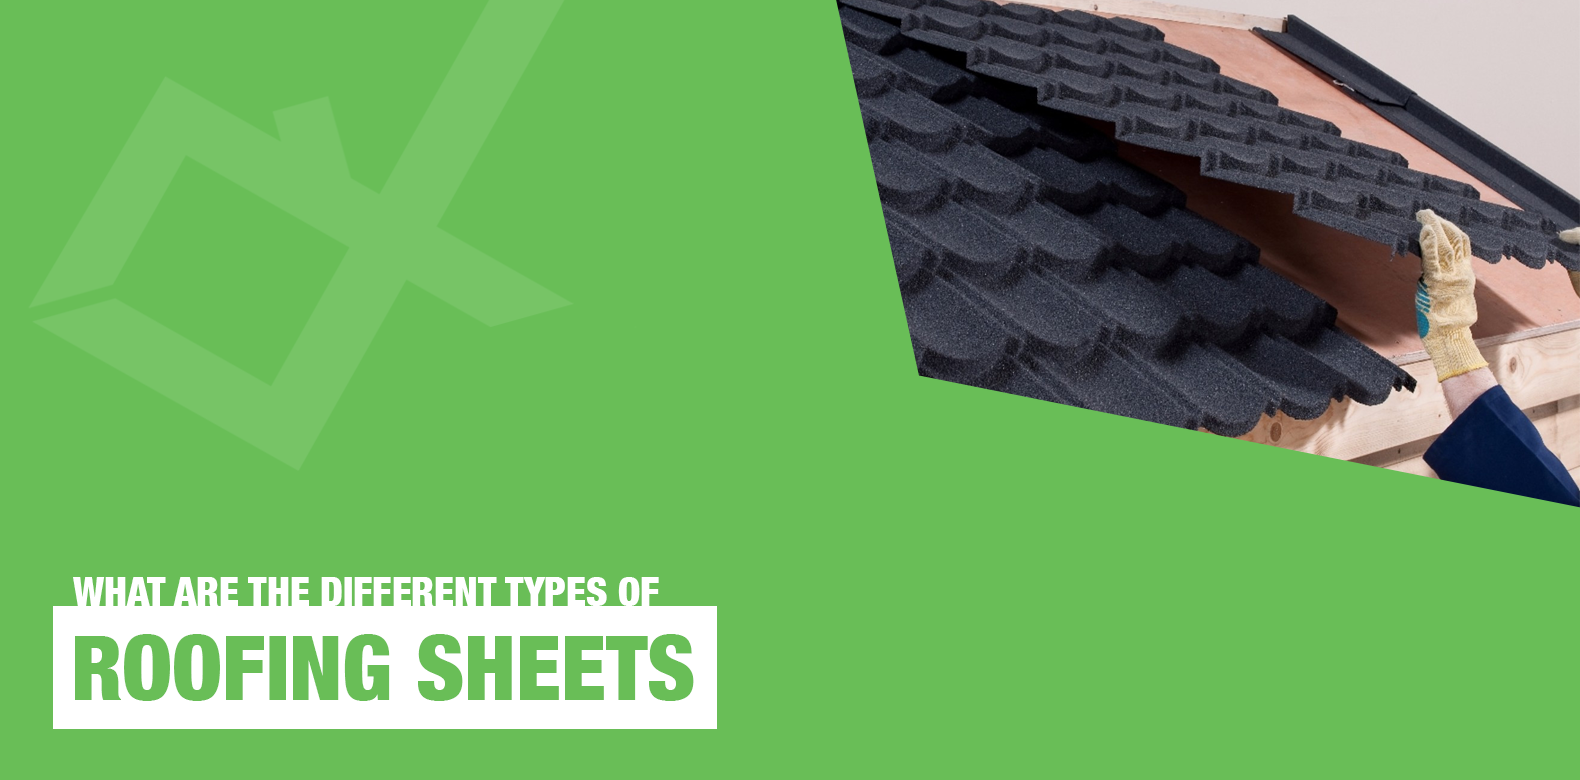 What Are the Different Types of Roofing Sheets?